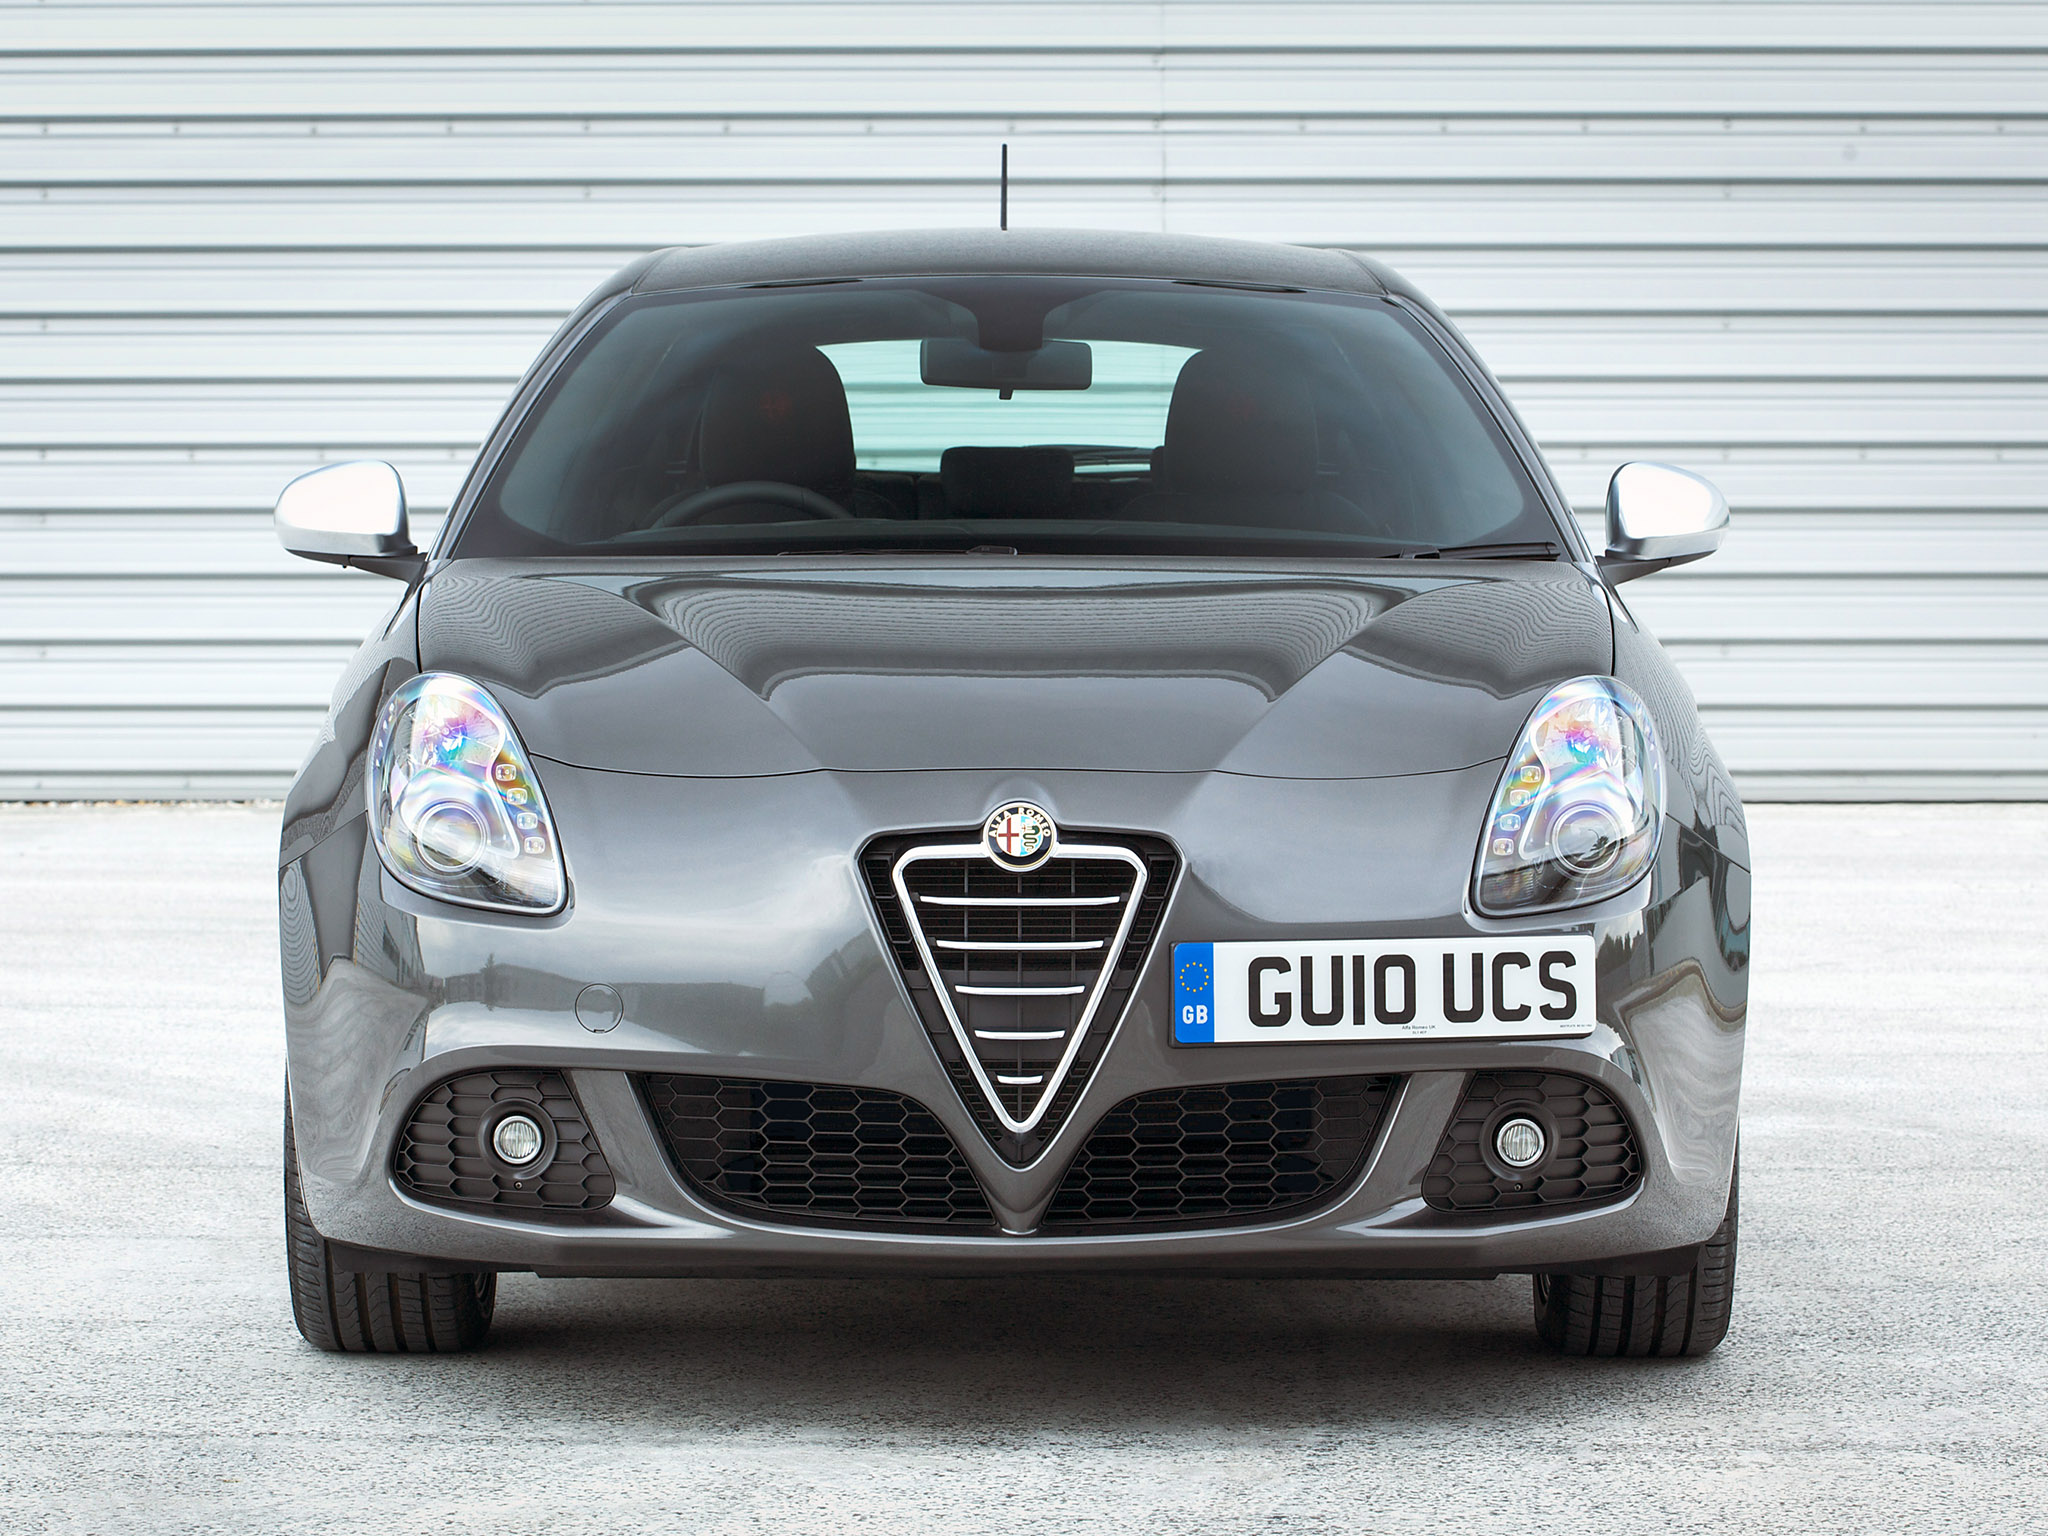 alfa romeo giulietta uk 2010 alfa romeo giulietta uk 2010 photo 05 car in pictures car photo. Black Bedroom Furniture Sets. Home Design Ideas